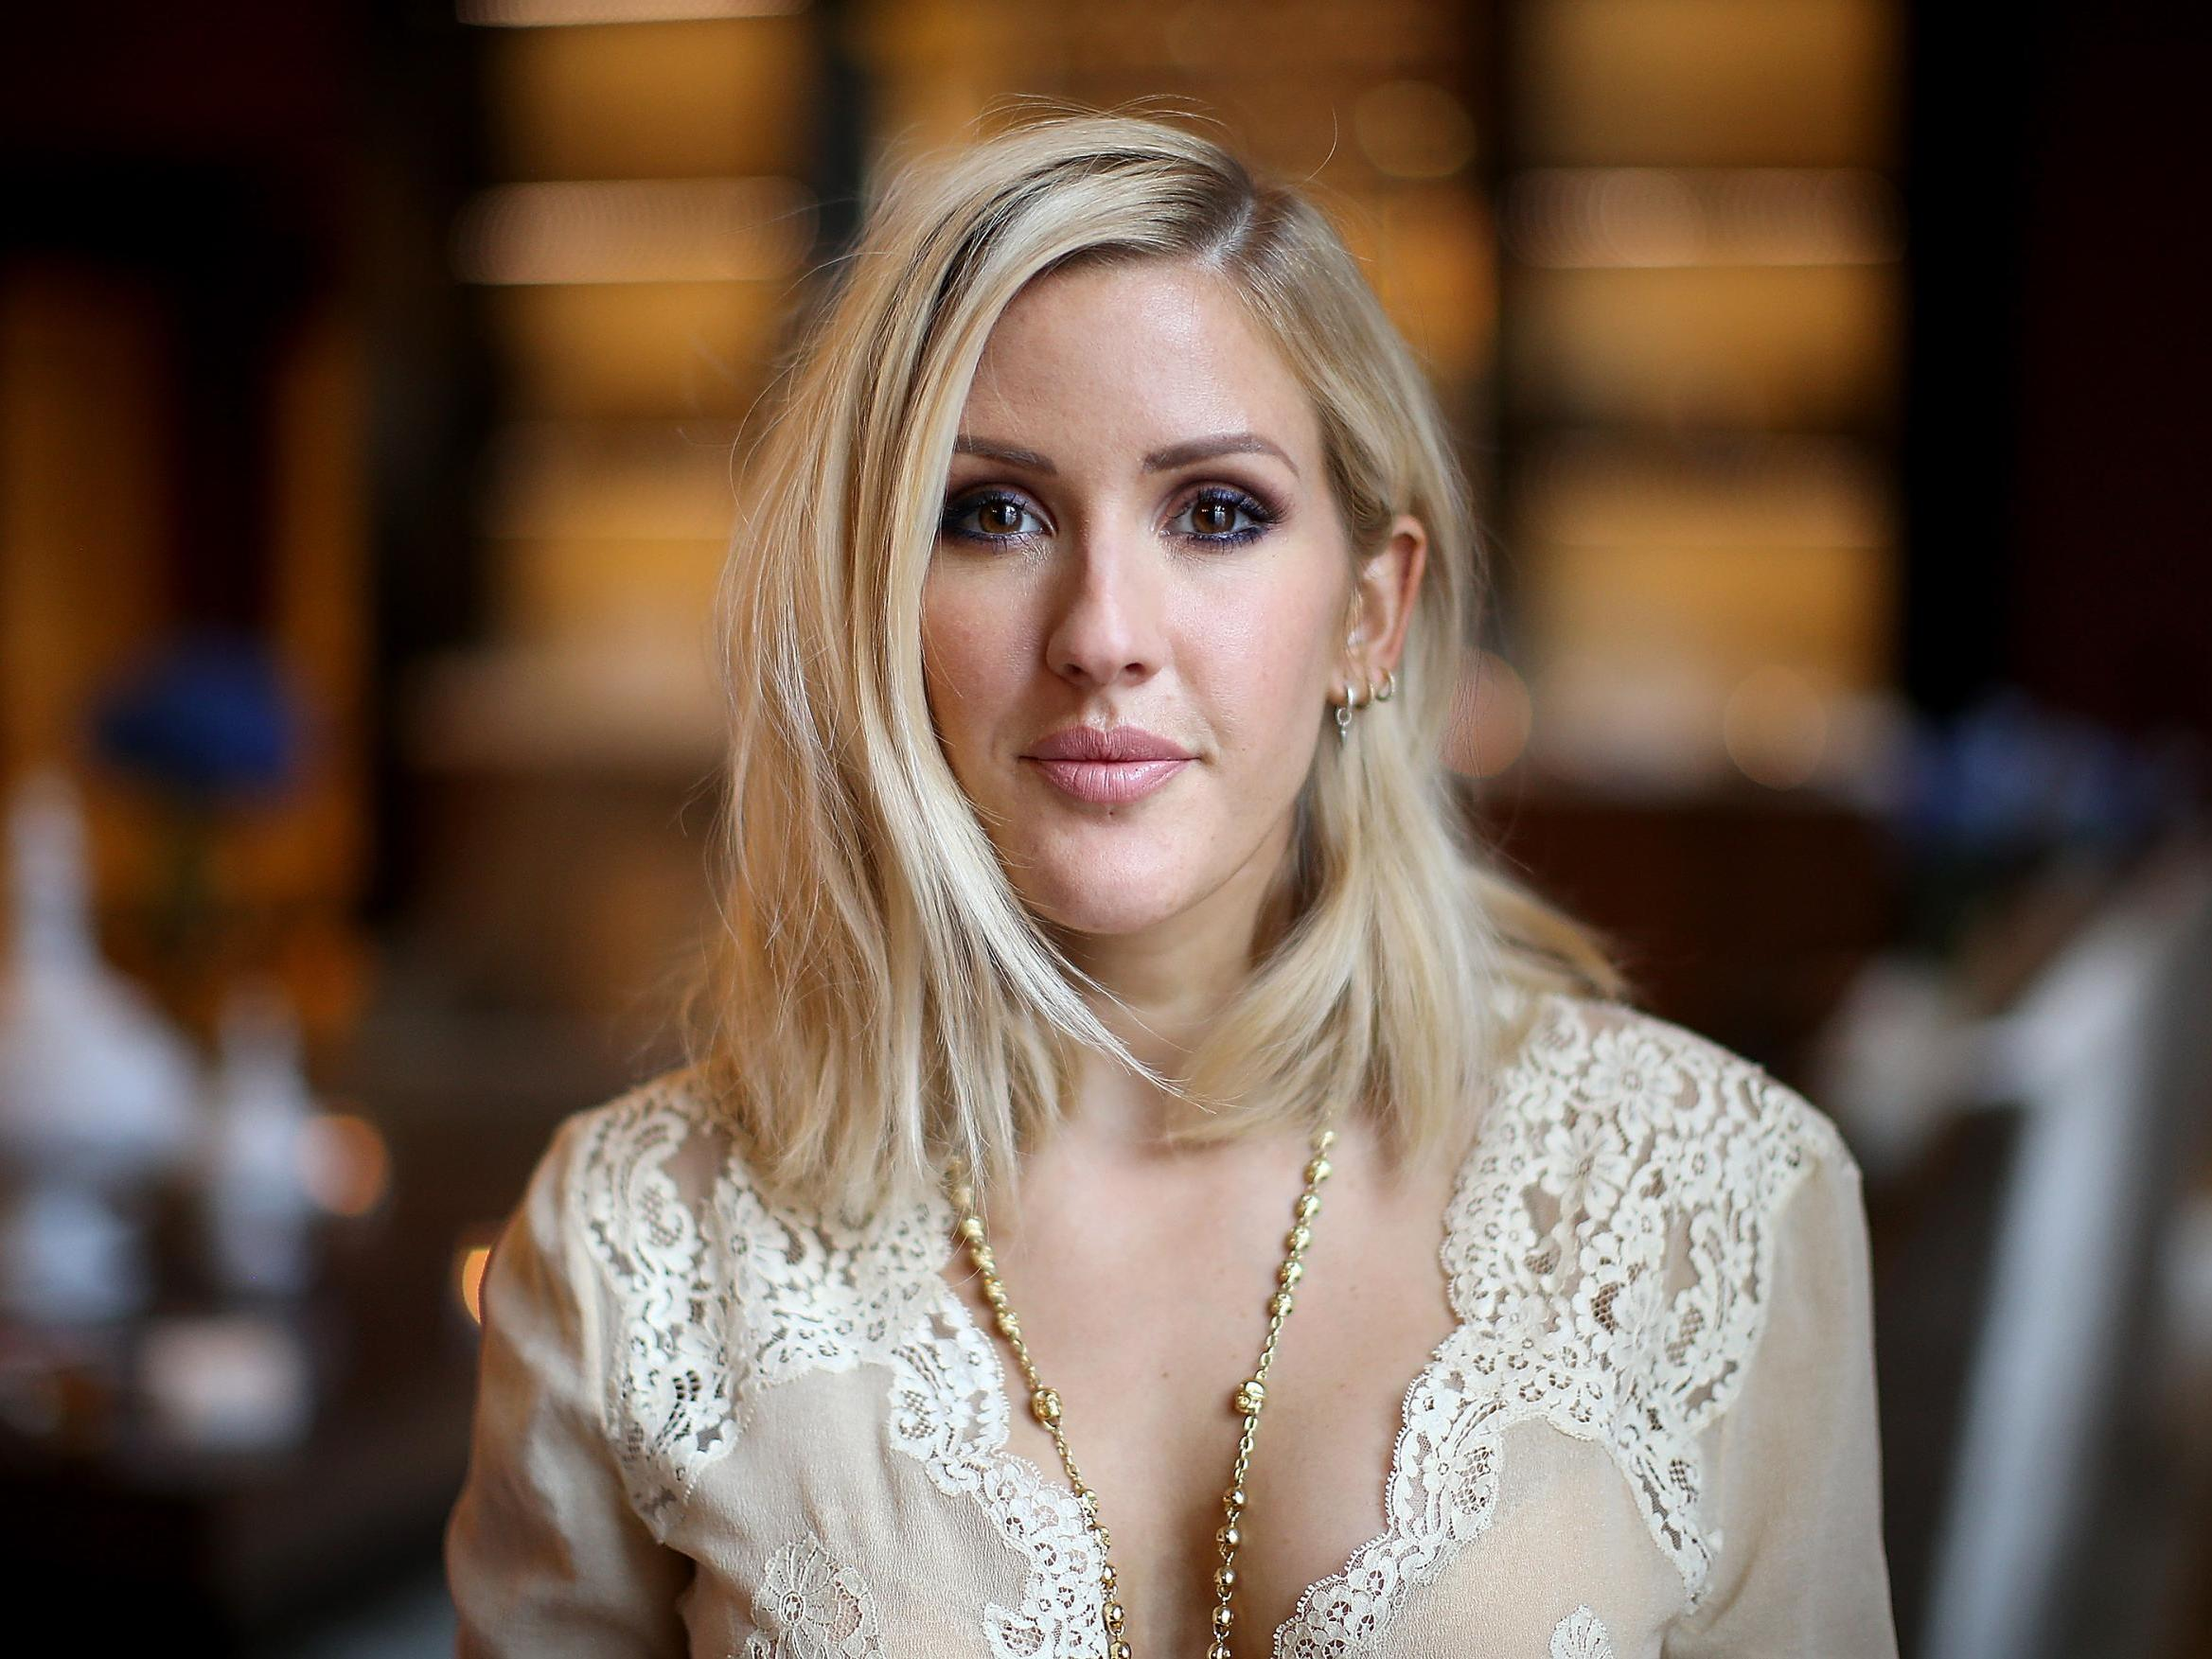 Ellie Goulding says she drank alcohol to make herself seem 'more fun…